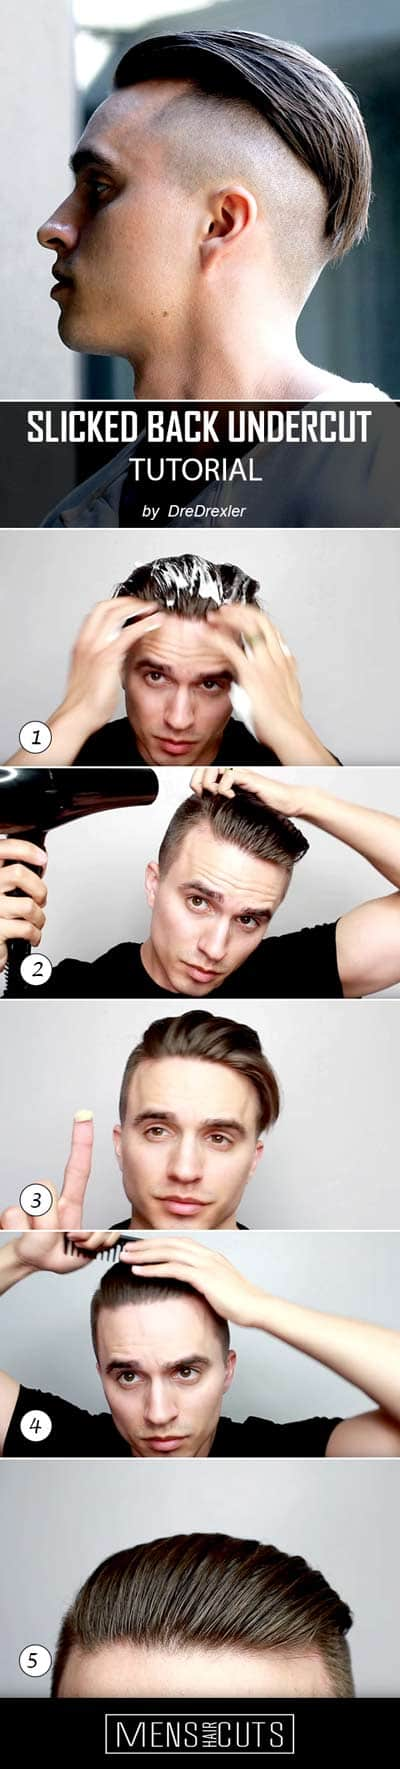 How To Perfectly Style Slicked Back Undercut